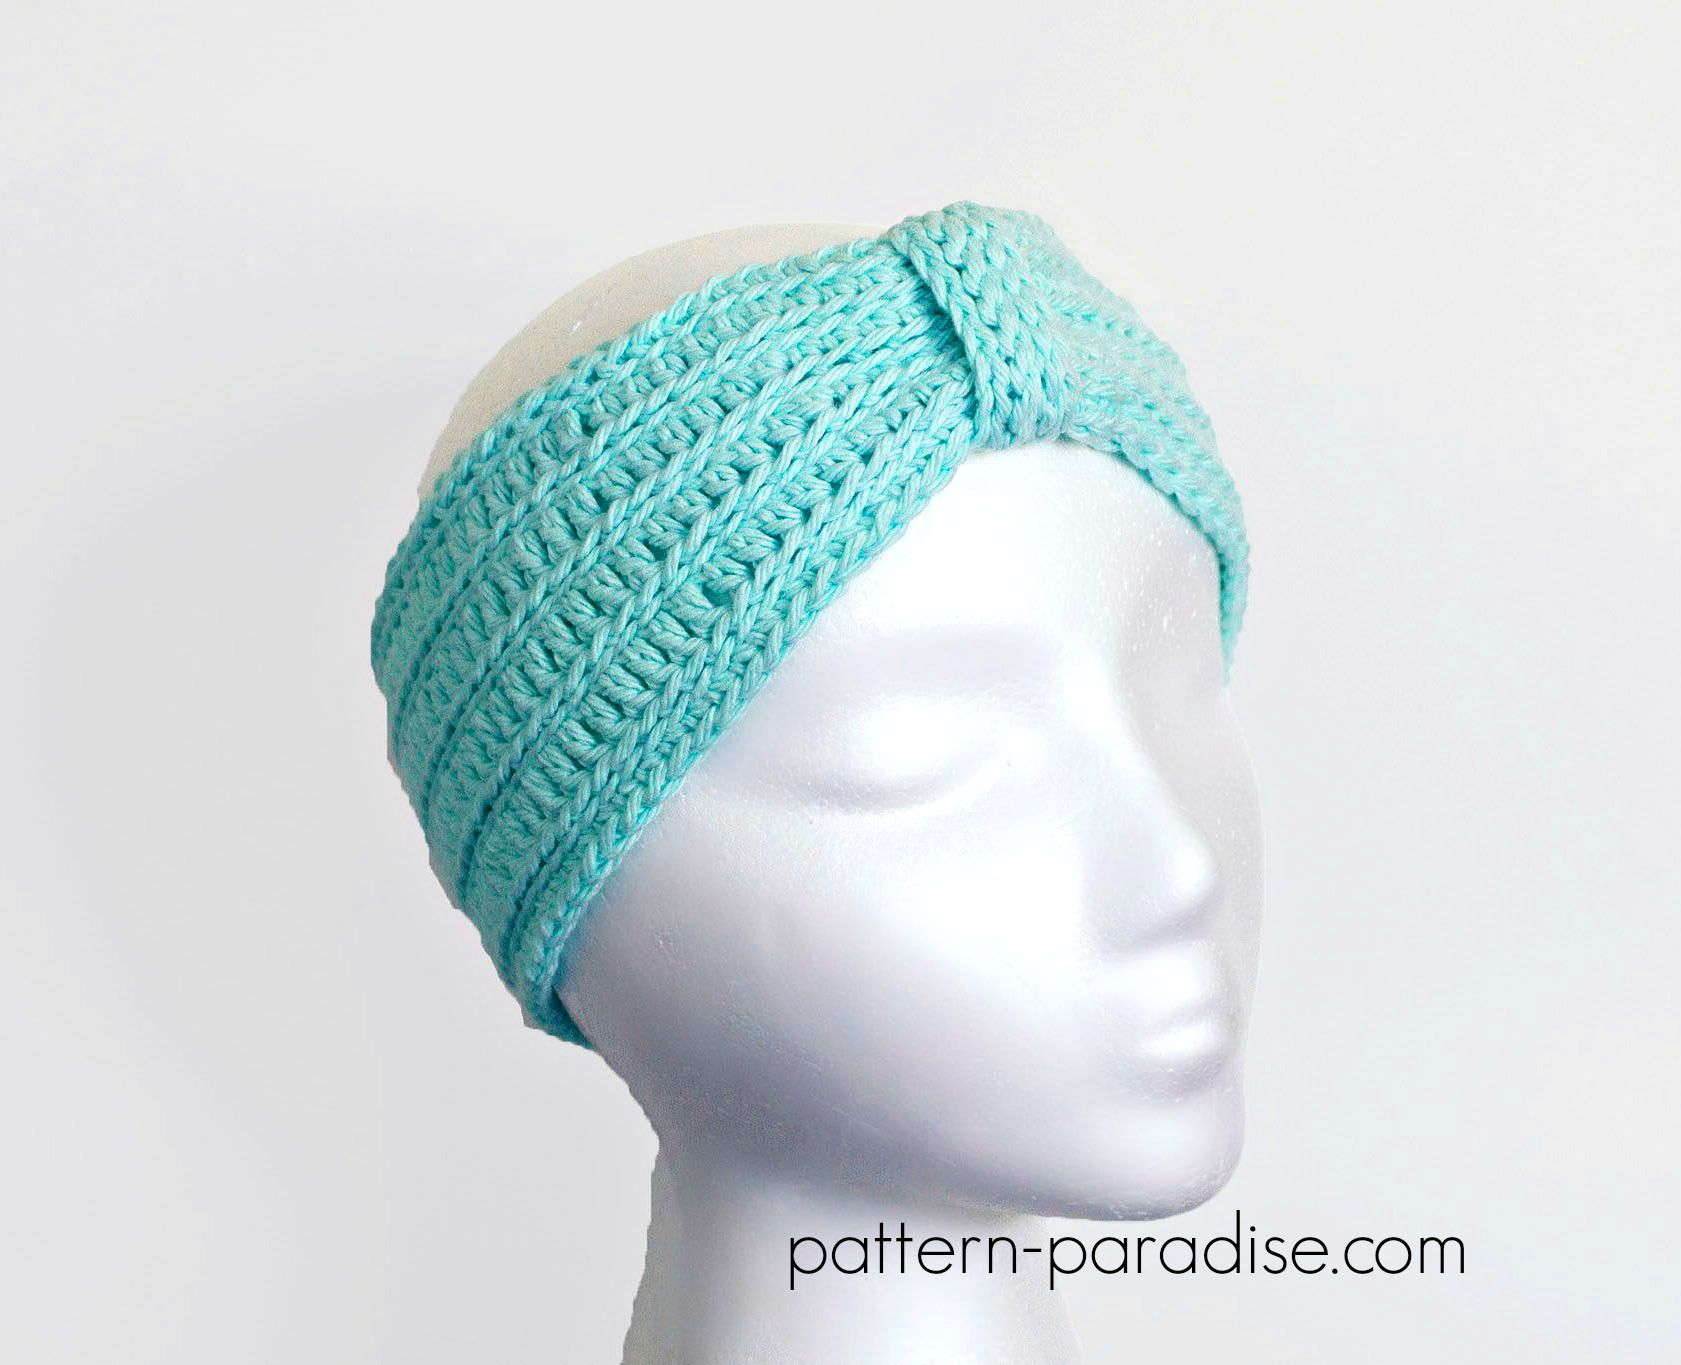 Free crochet pattern for spa tranquility turban headband free crochet pattern for spa tranquility turban headband headwrap by pattern dt1010fo